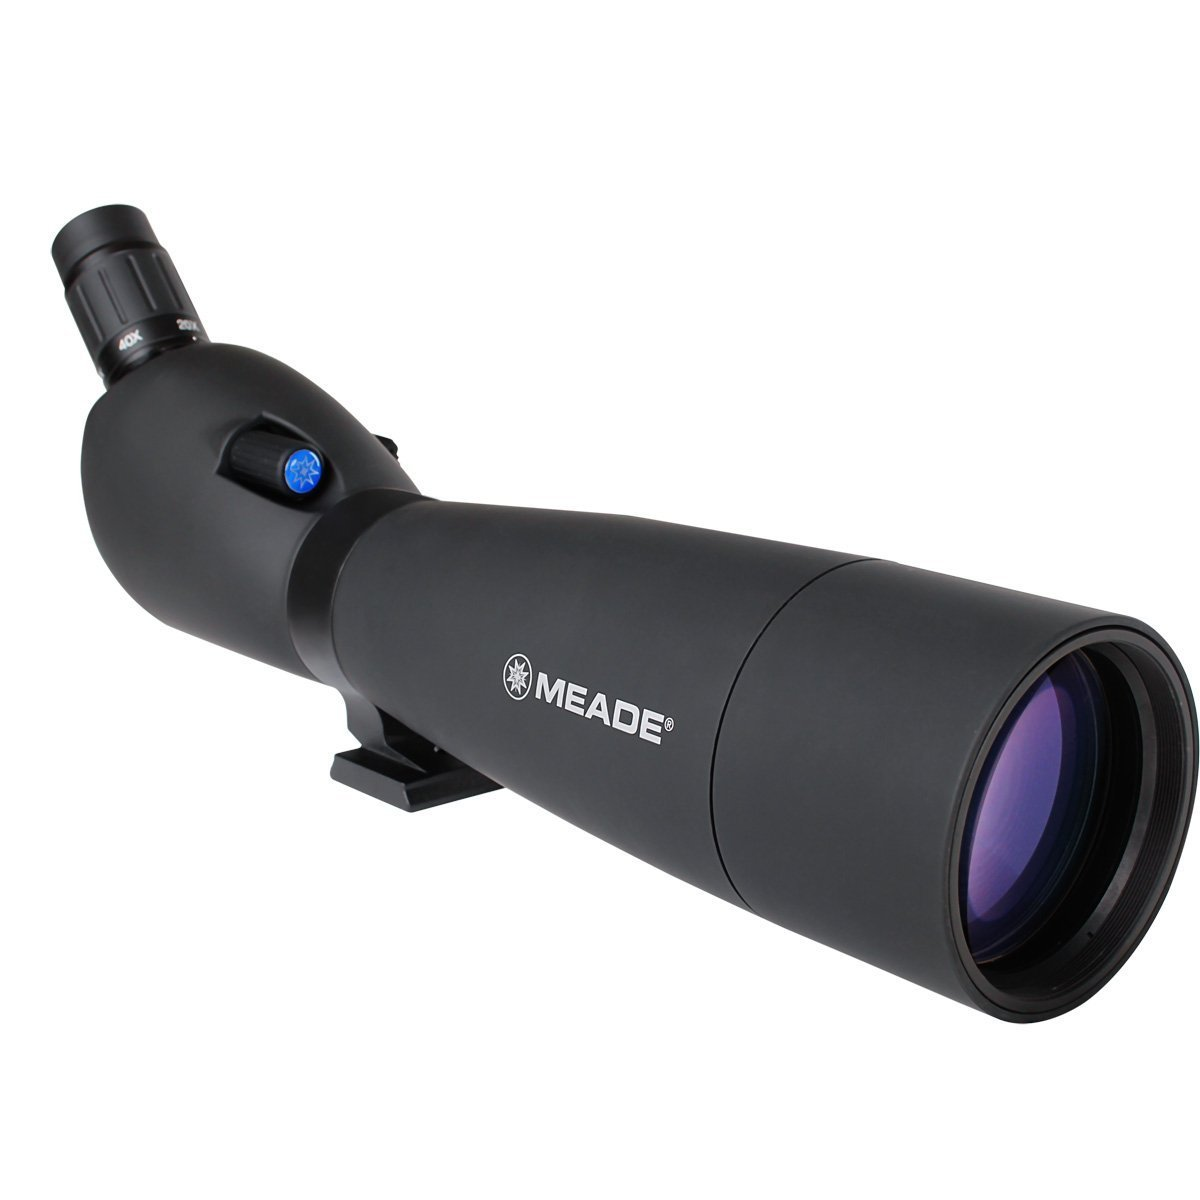 Meade Instruments 126001 Wilderness Spotting Scope - 20-60x80-mm (Black) by Meade Instruments